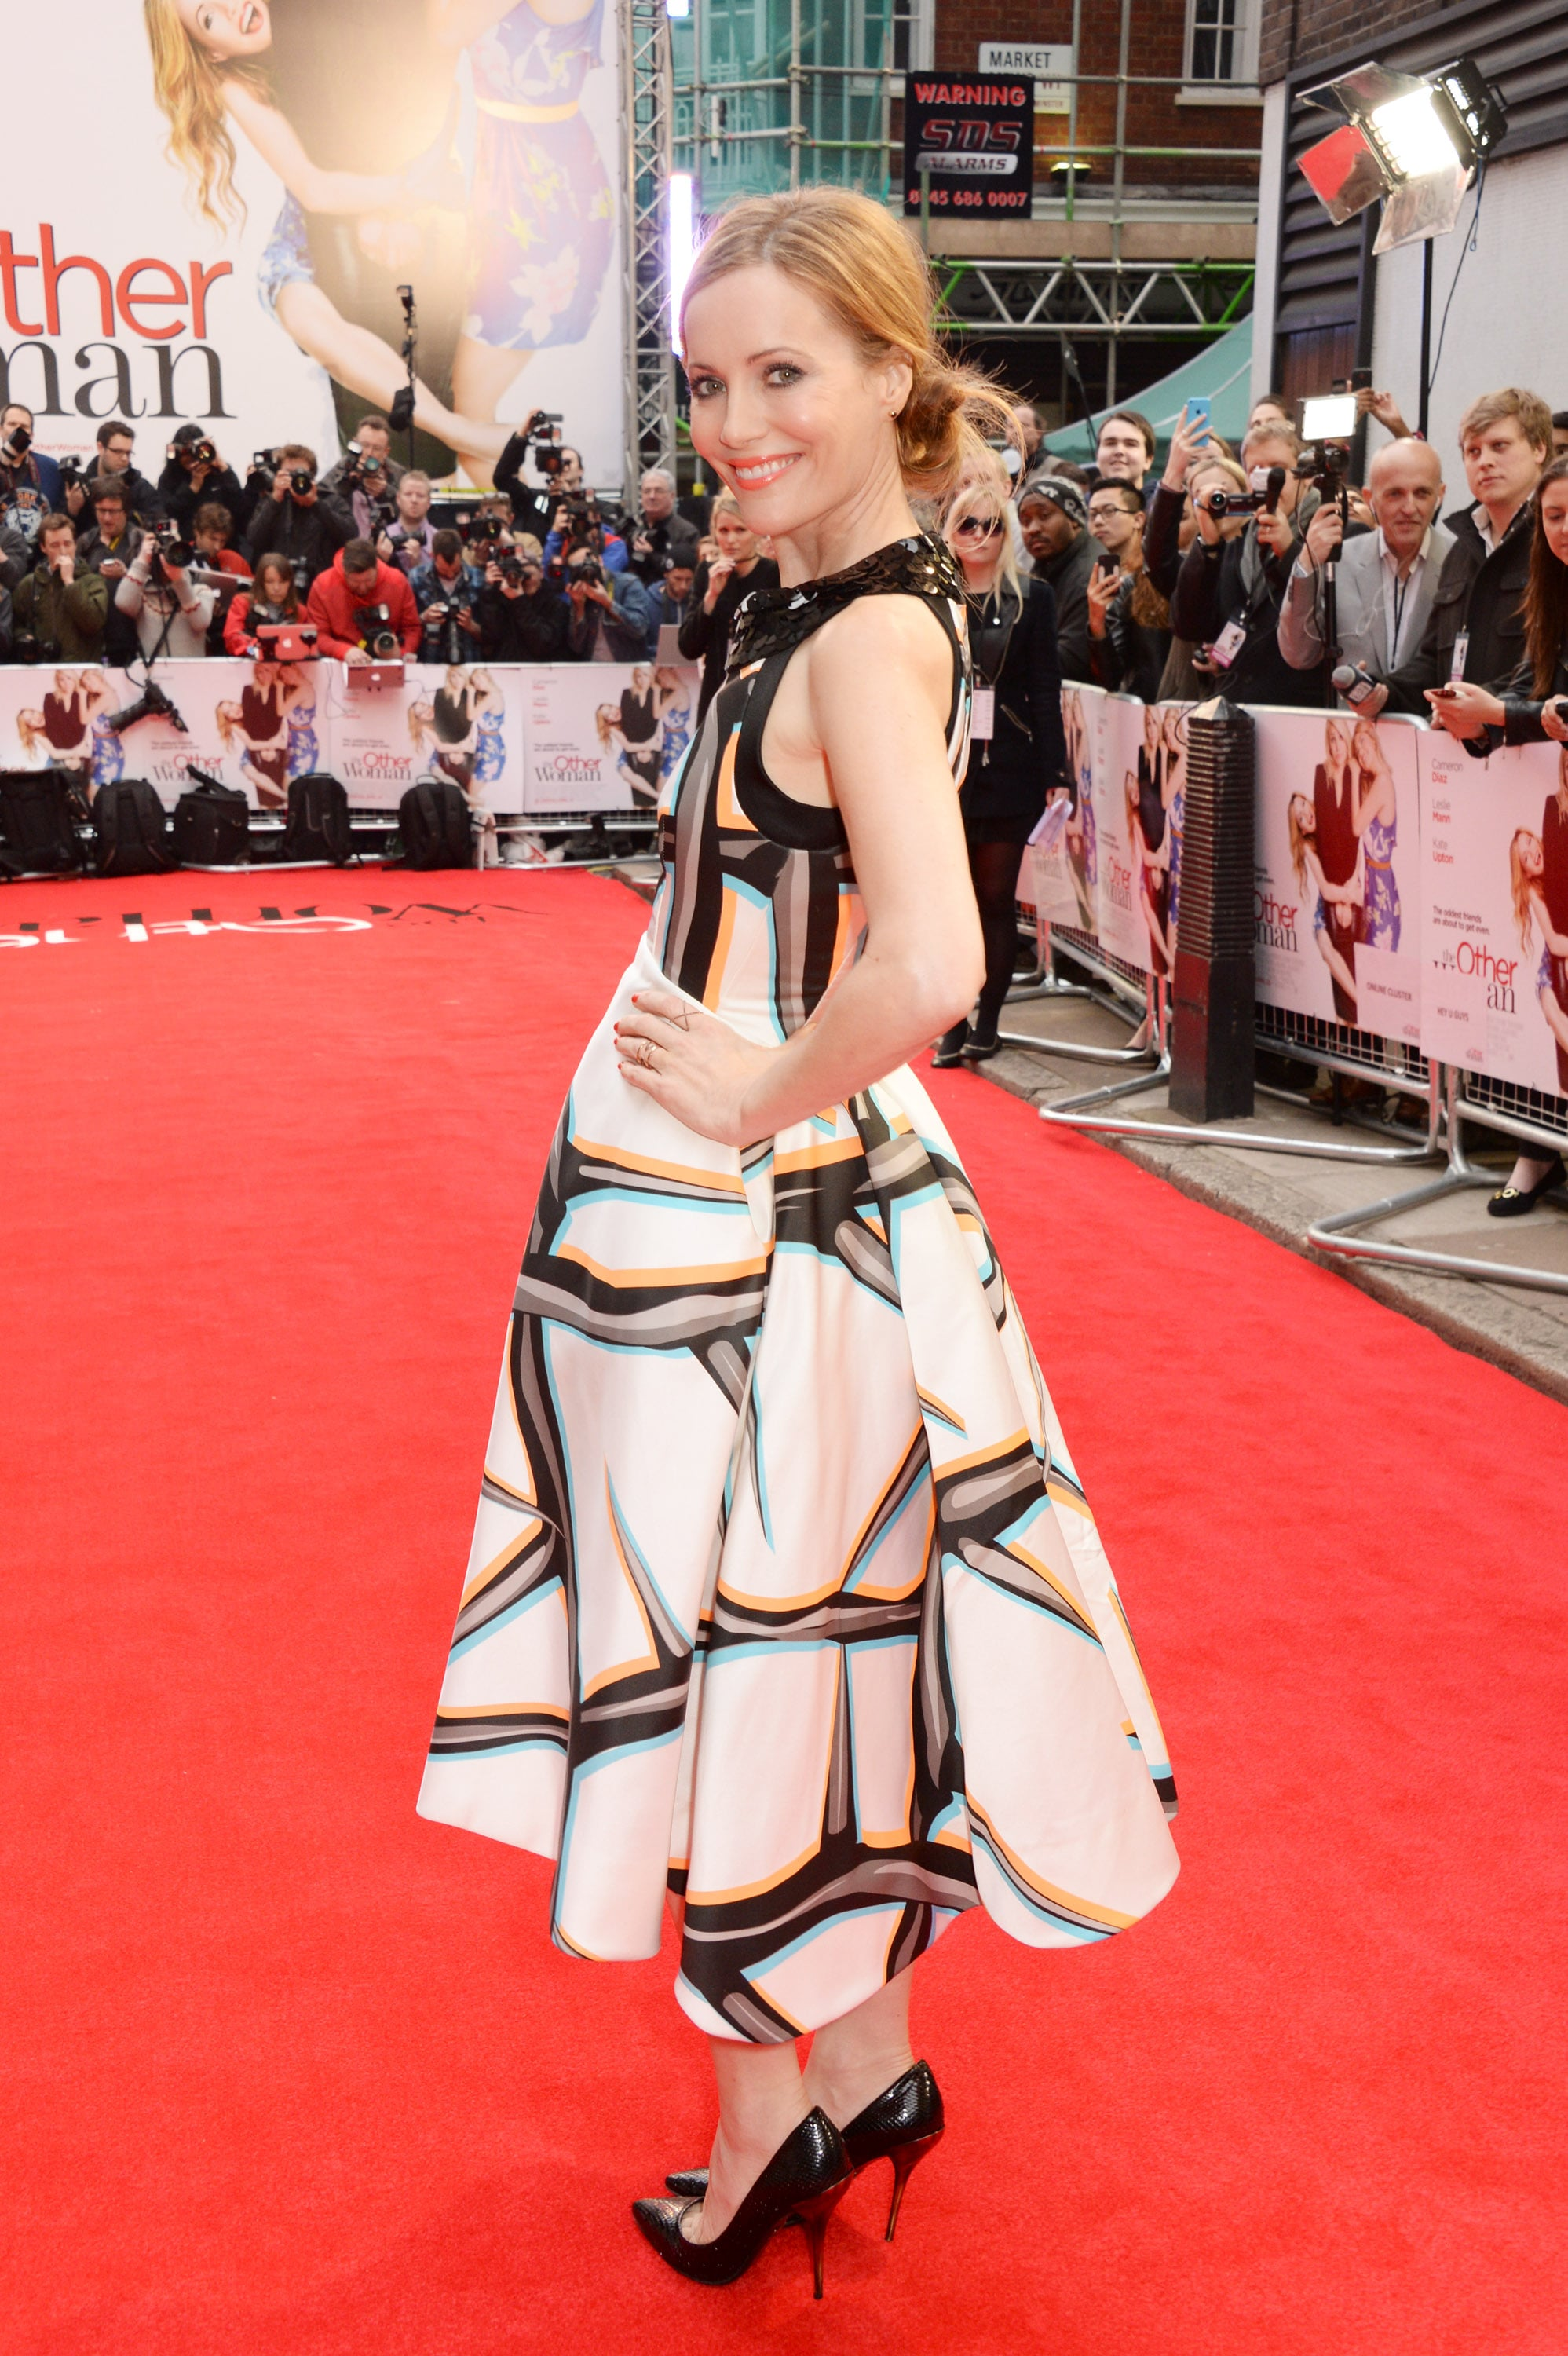 Leslie Mann at the London Premiere of The Other Woman